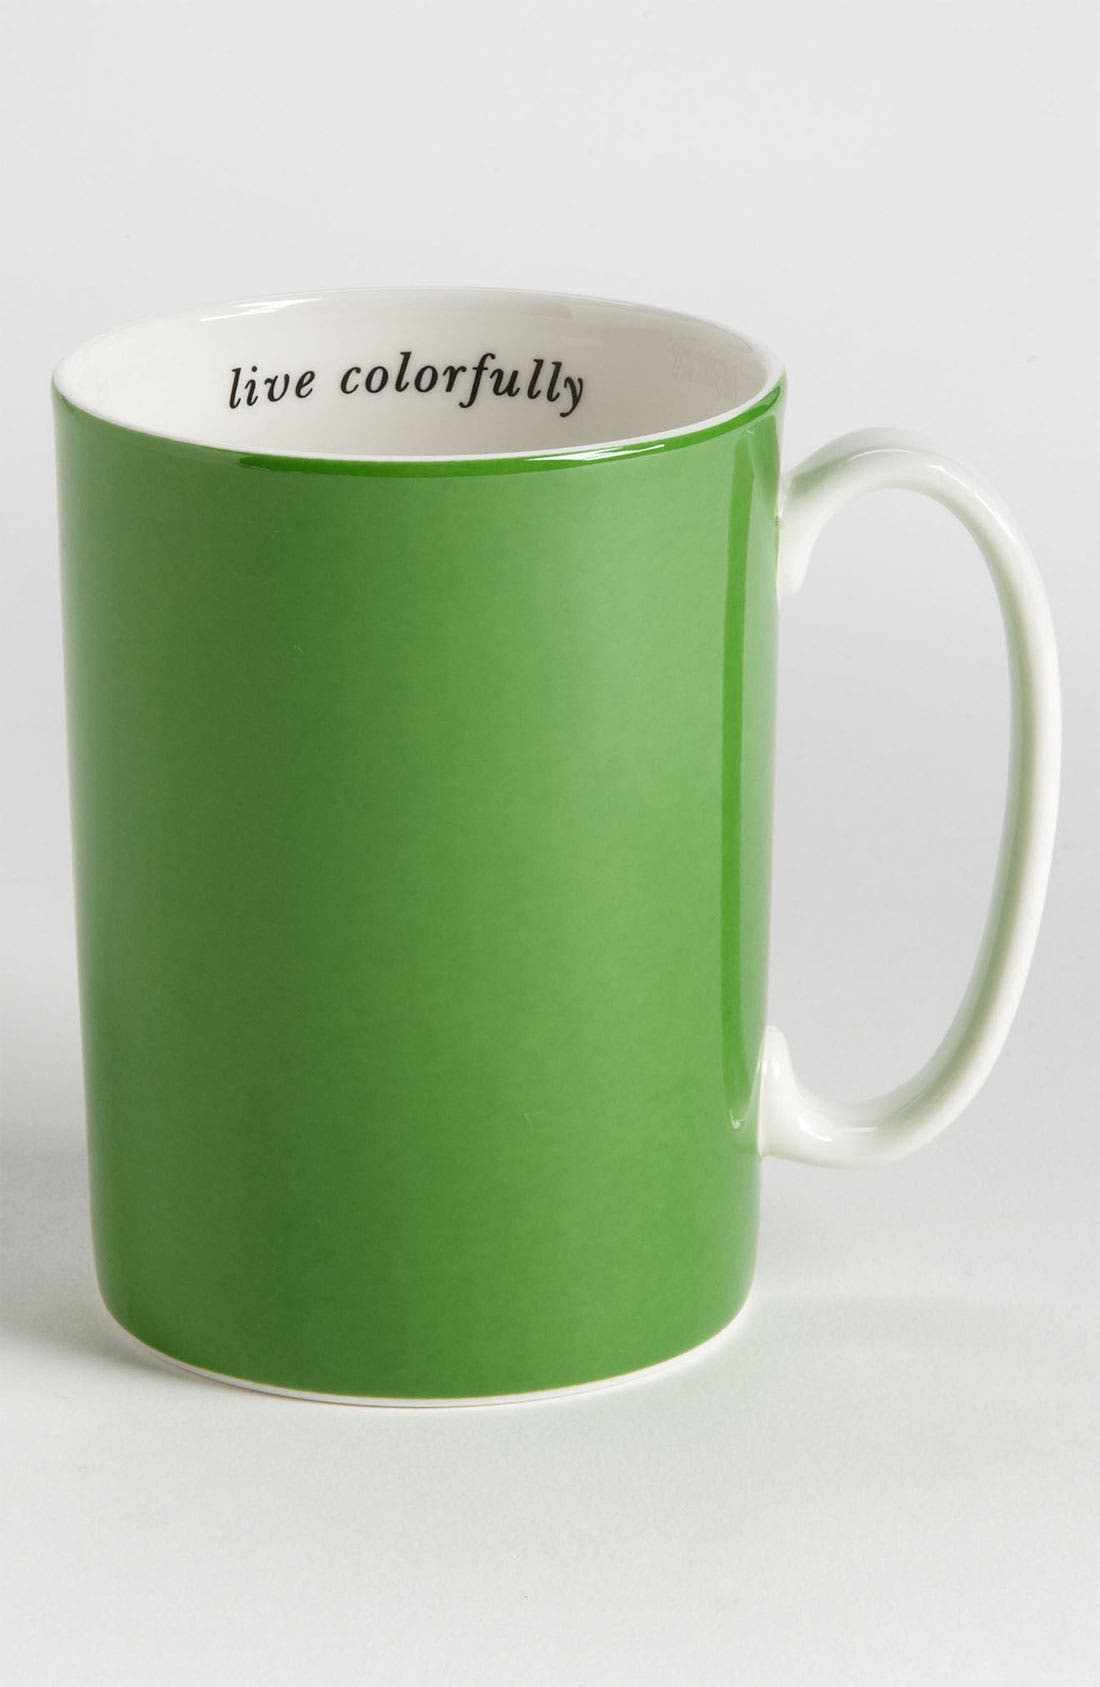 Alternate Image 1 Selected - kate spade new york 'say the word - live colorfully' porcelain mug